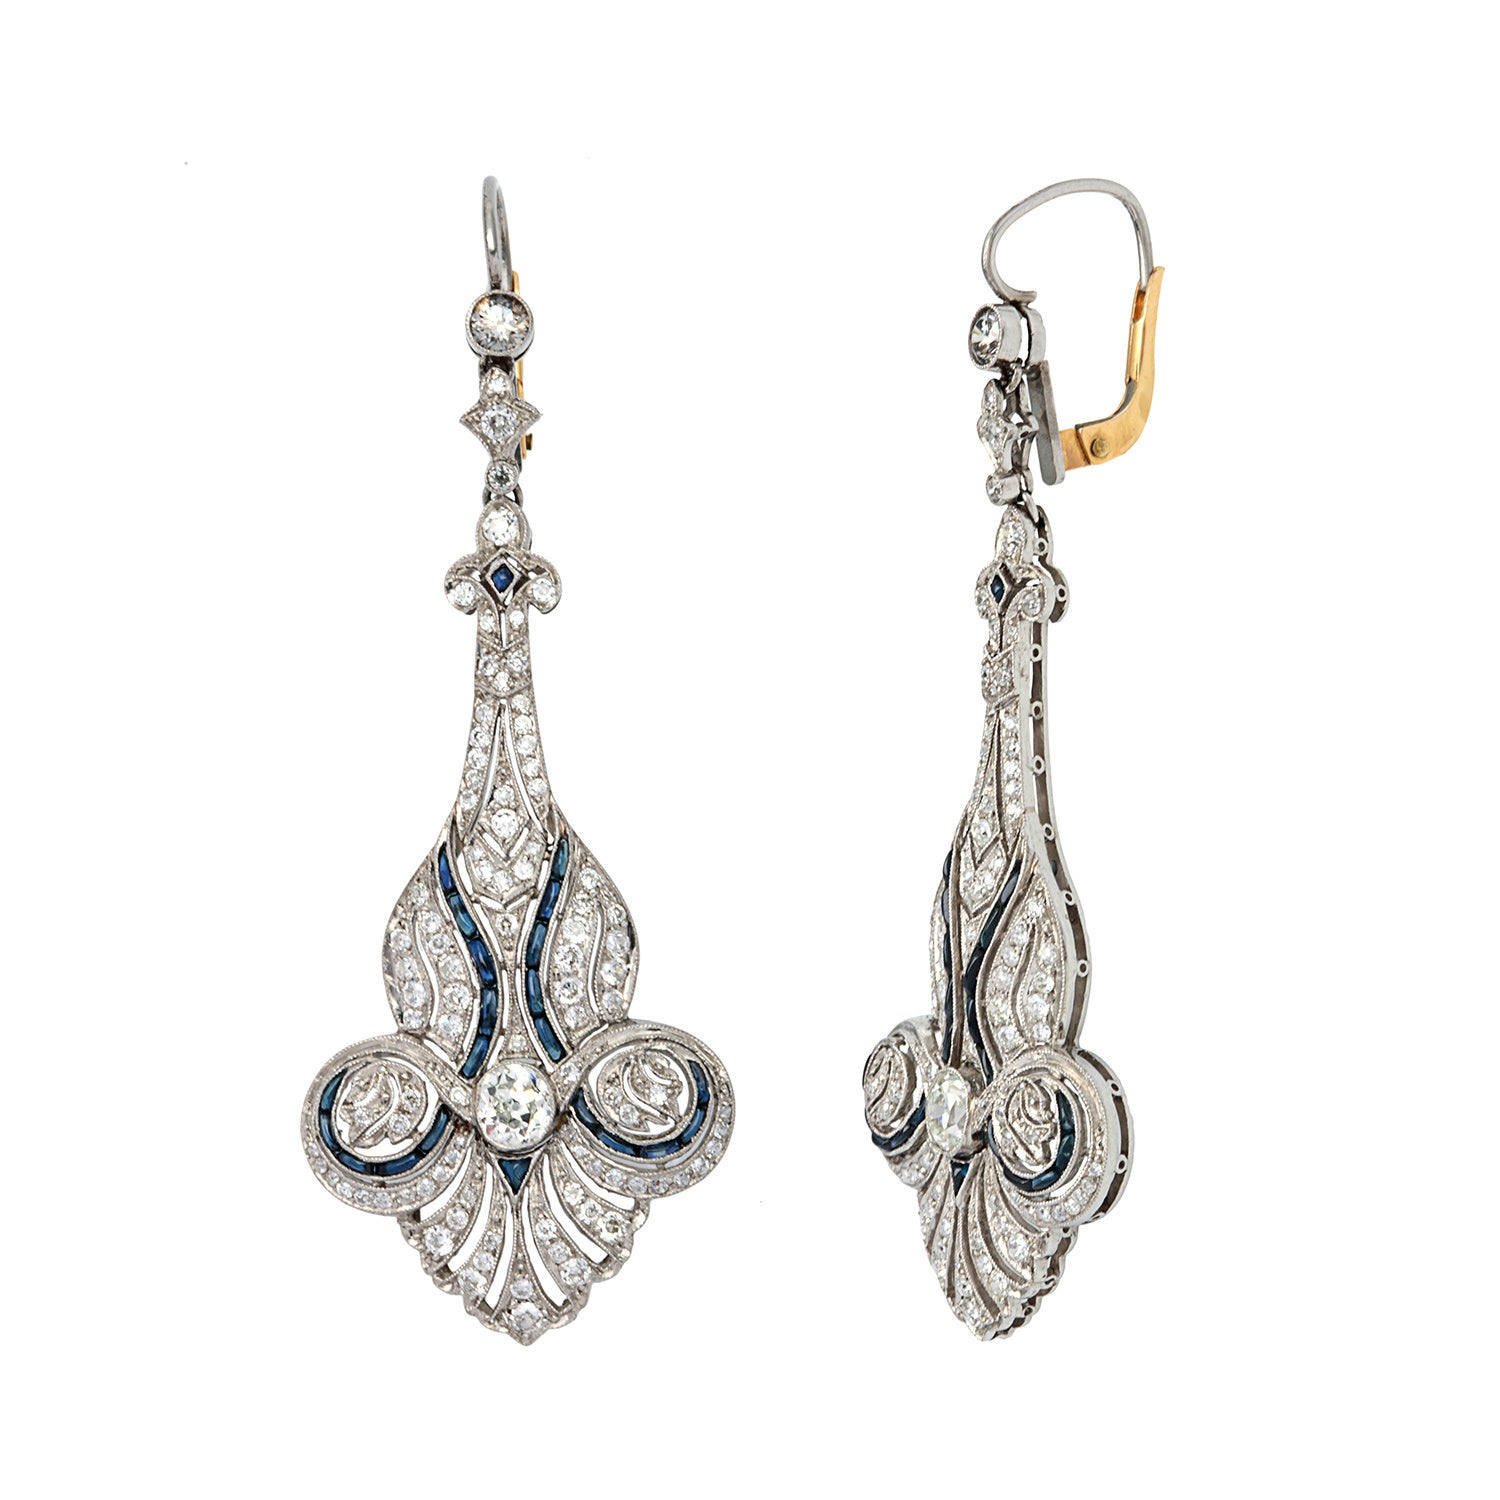 Pre Owned Platinum 3 1 5ct Tdw Diamond And Shire Estate Earrings G H Vs1 Vs2 On Free Shipping Today 9253462